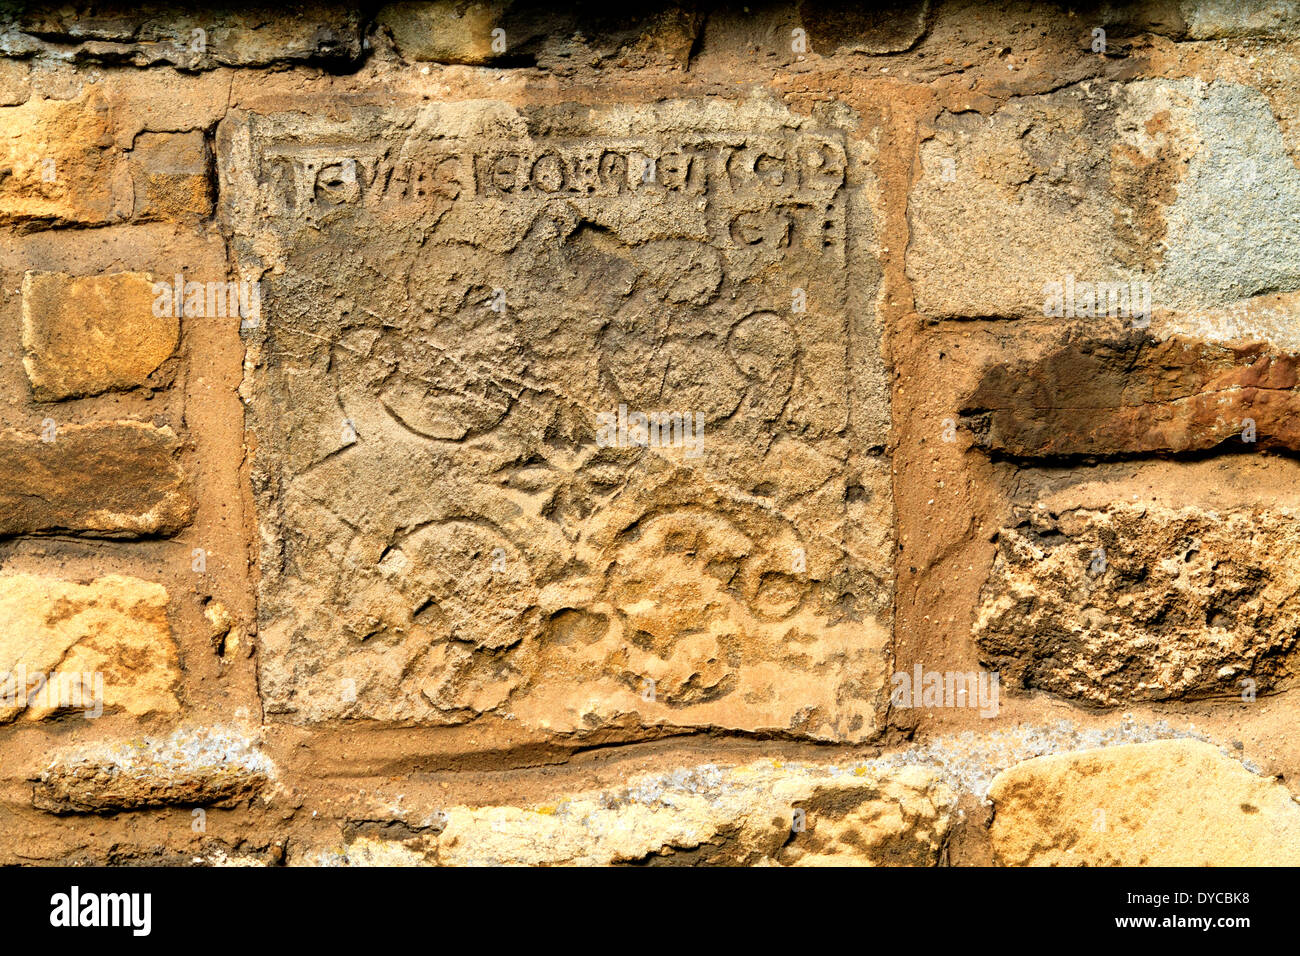 Winteringham all saints church. N E Lincolnshire. Mystery stone set in the church wall, no one seems to know anything about it. - Stock Image